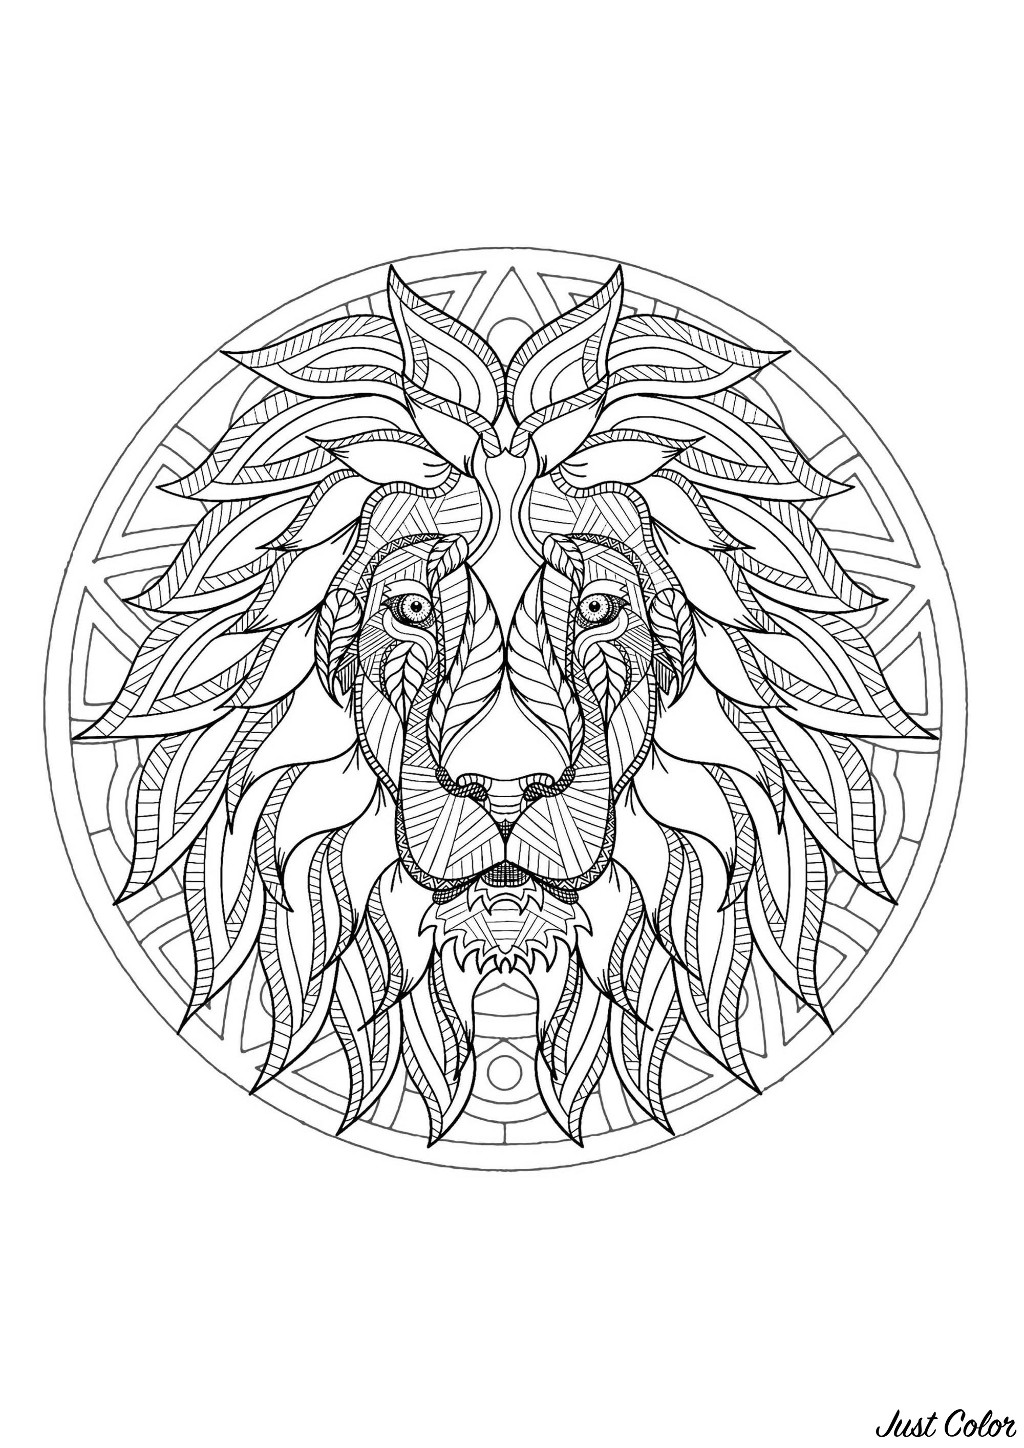 Incredible Complex Lion Head Mandala Mandalas With Animals 100